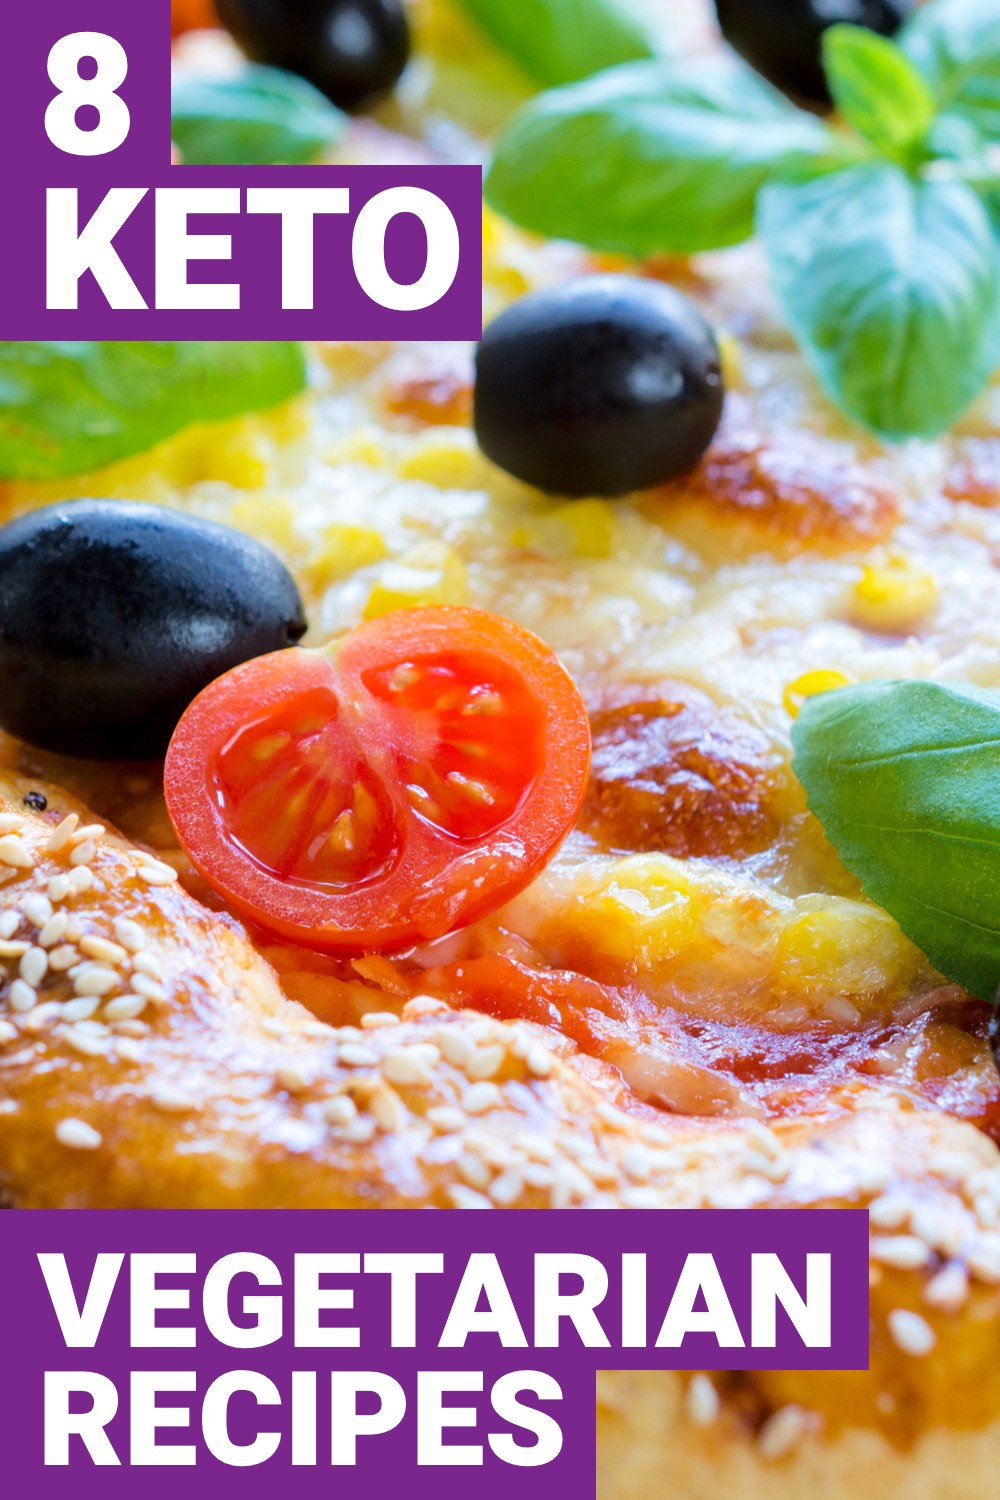 Vegetarians are going to have a lot more restrictions when they're on the ketogenic diet. Here are 8 keto vegetarian recipes that all vegetarians will be able to enjoy.